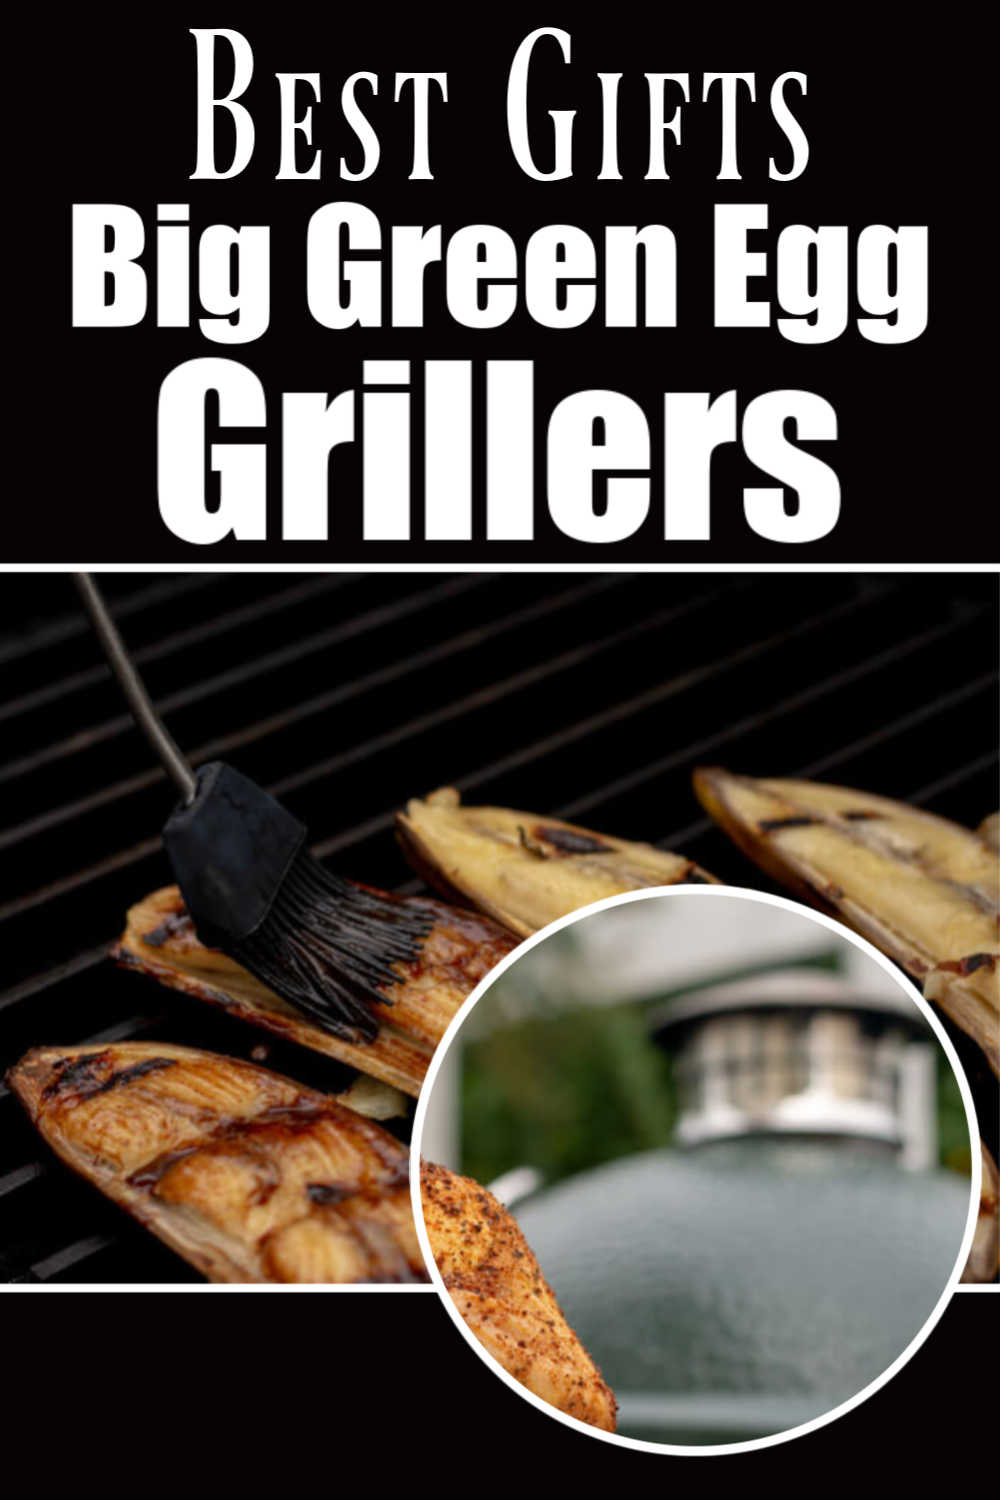 Top 5 Big Green Egg Gifts – Holiday Gift Guide for Grillers